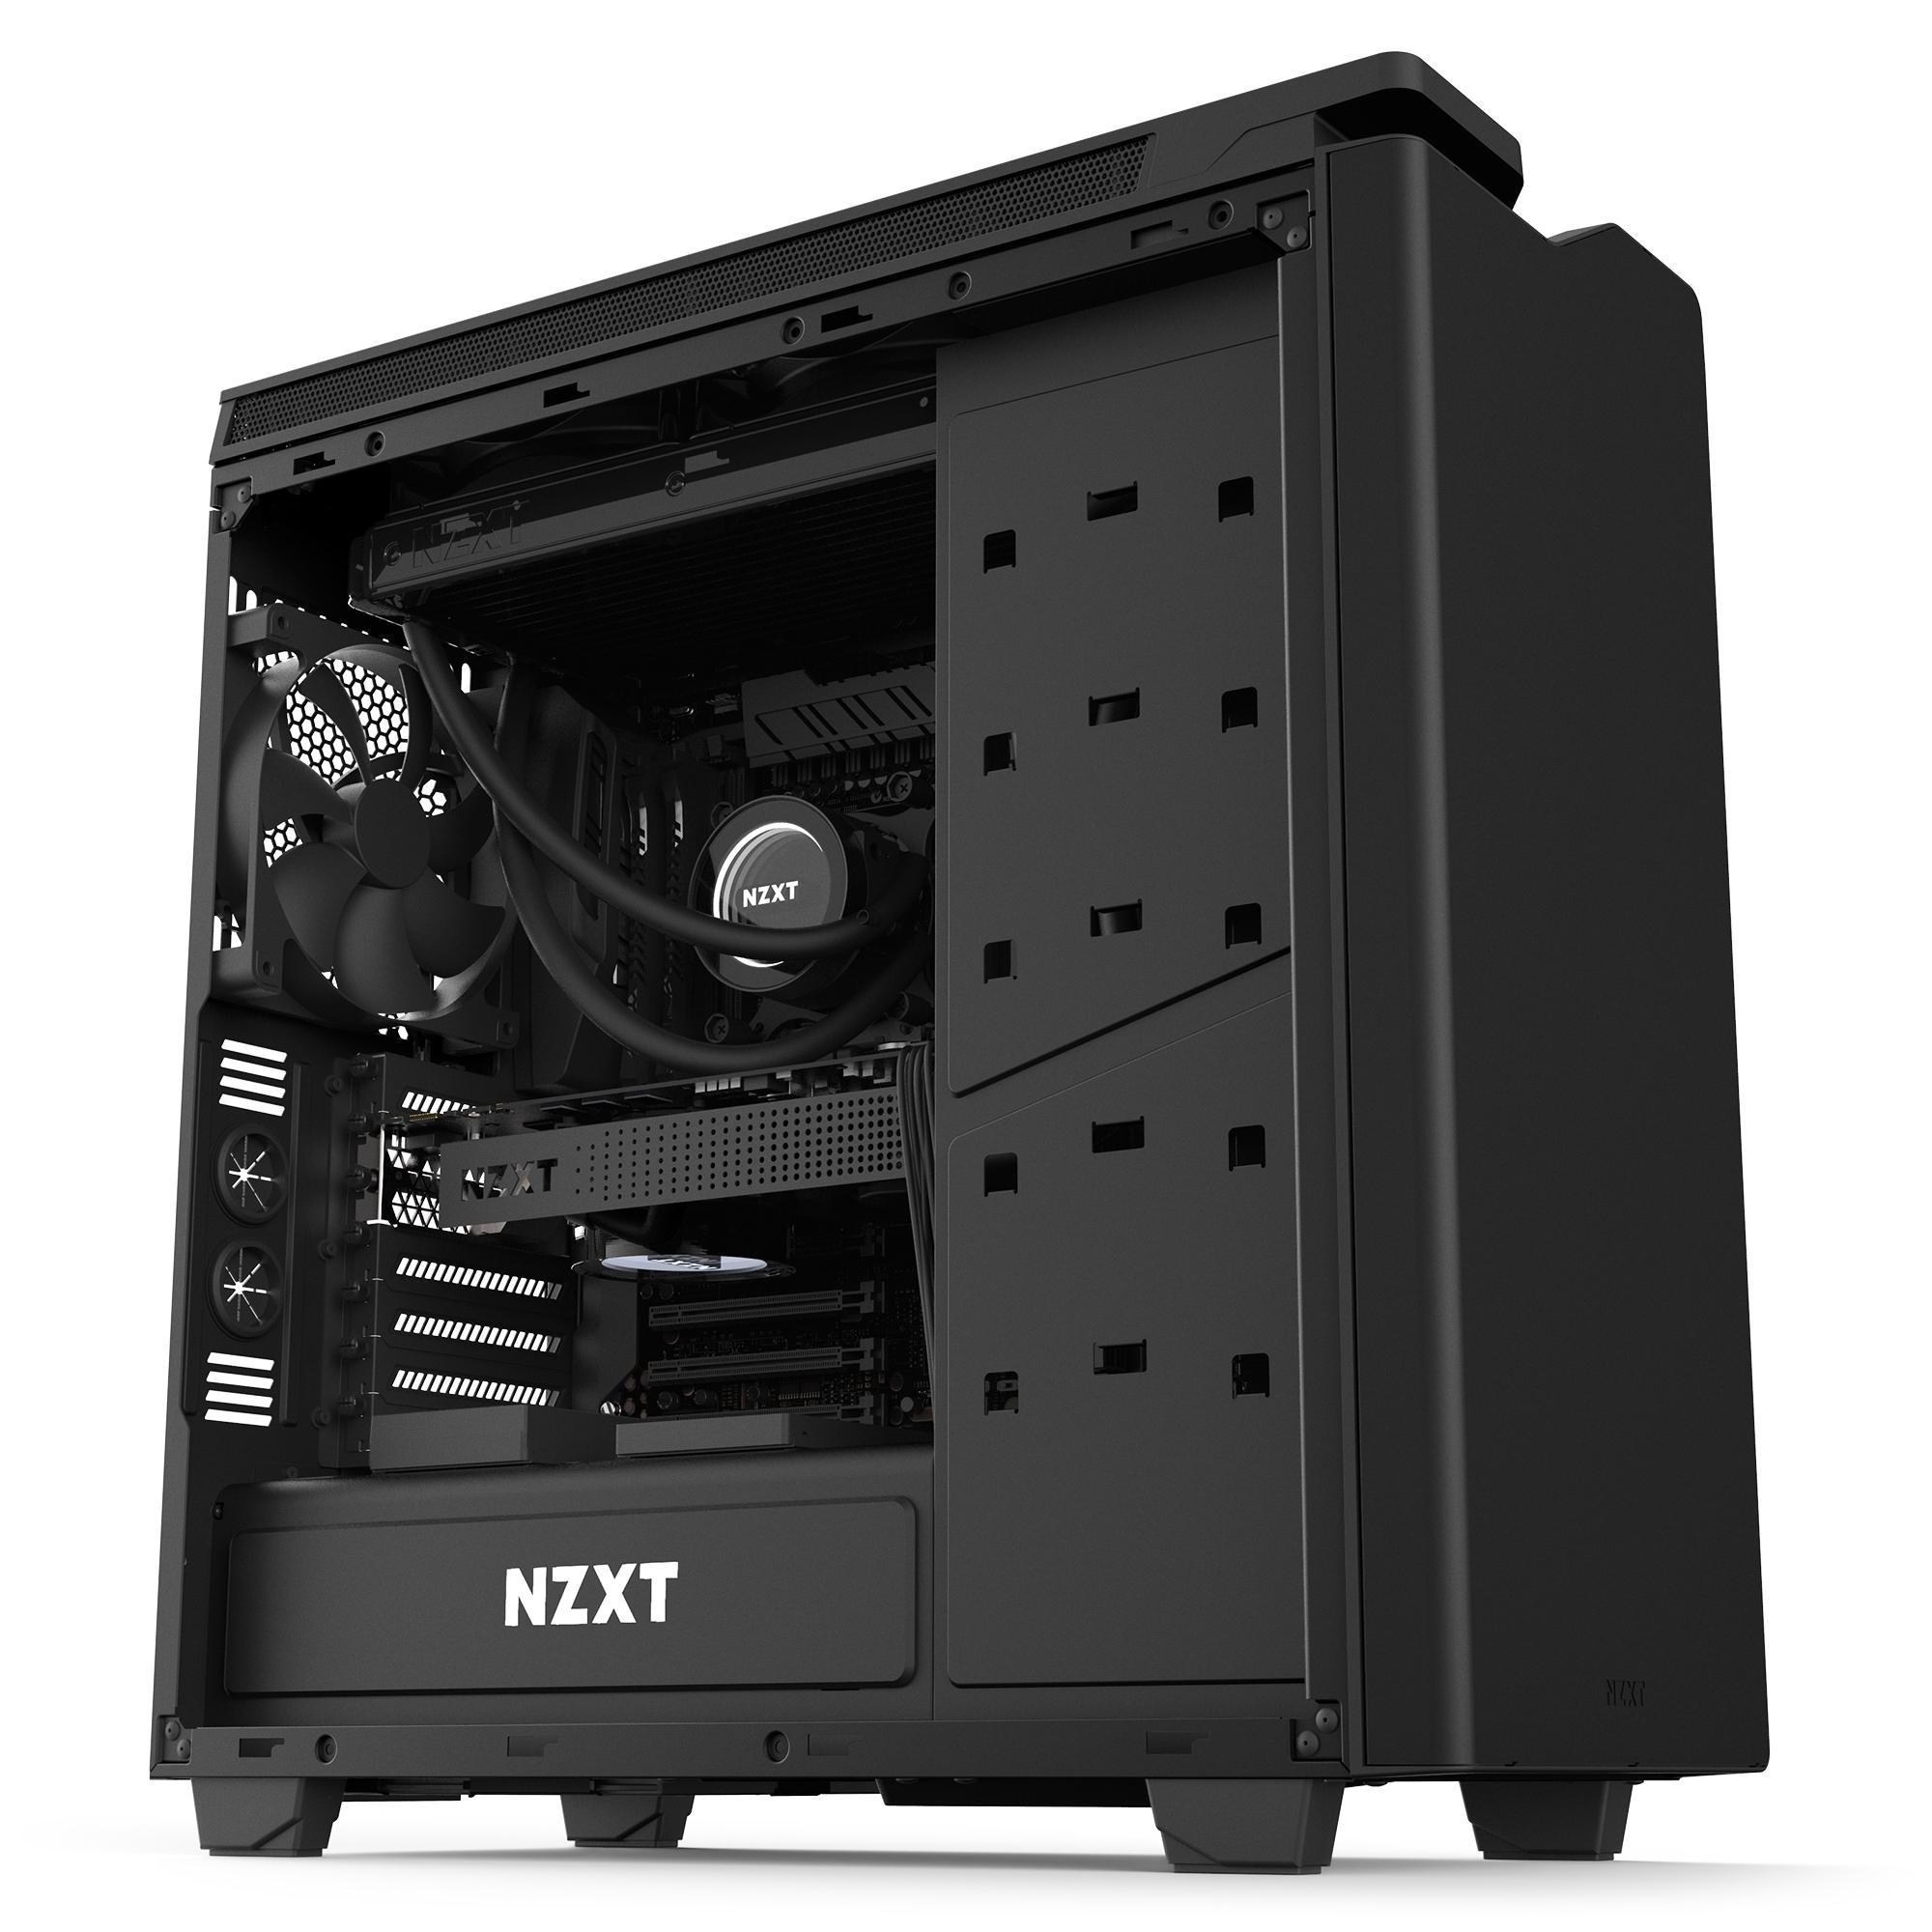 NZXT Kraken G12 - GPU Mounting Kit for Kraken X Series AIO - Enhanced GPU  Cooling - AMD and NVIDIA GPU Compatibility - Active Cooling for VRM